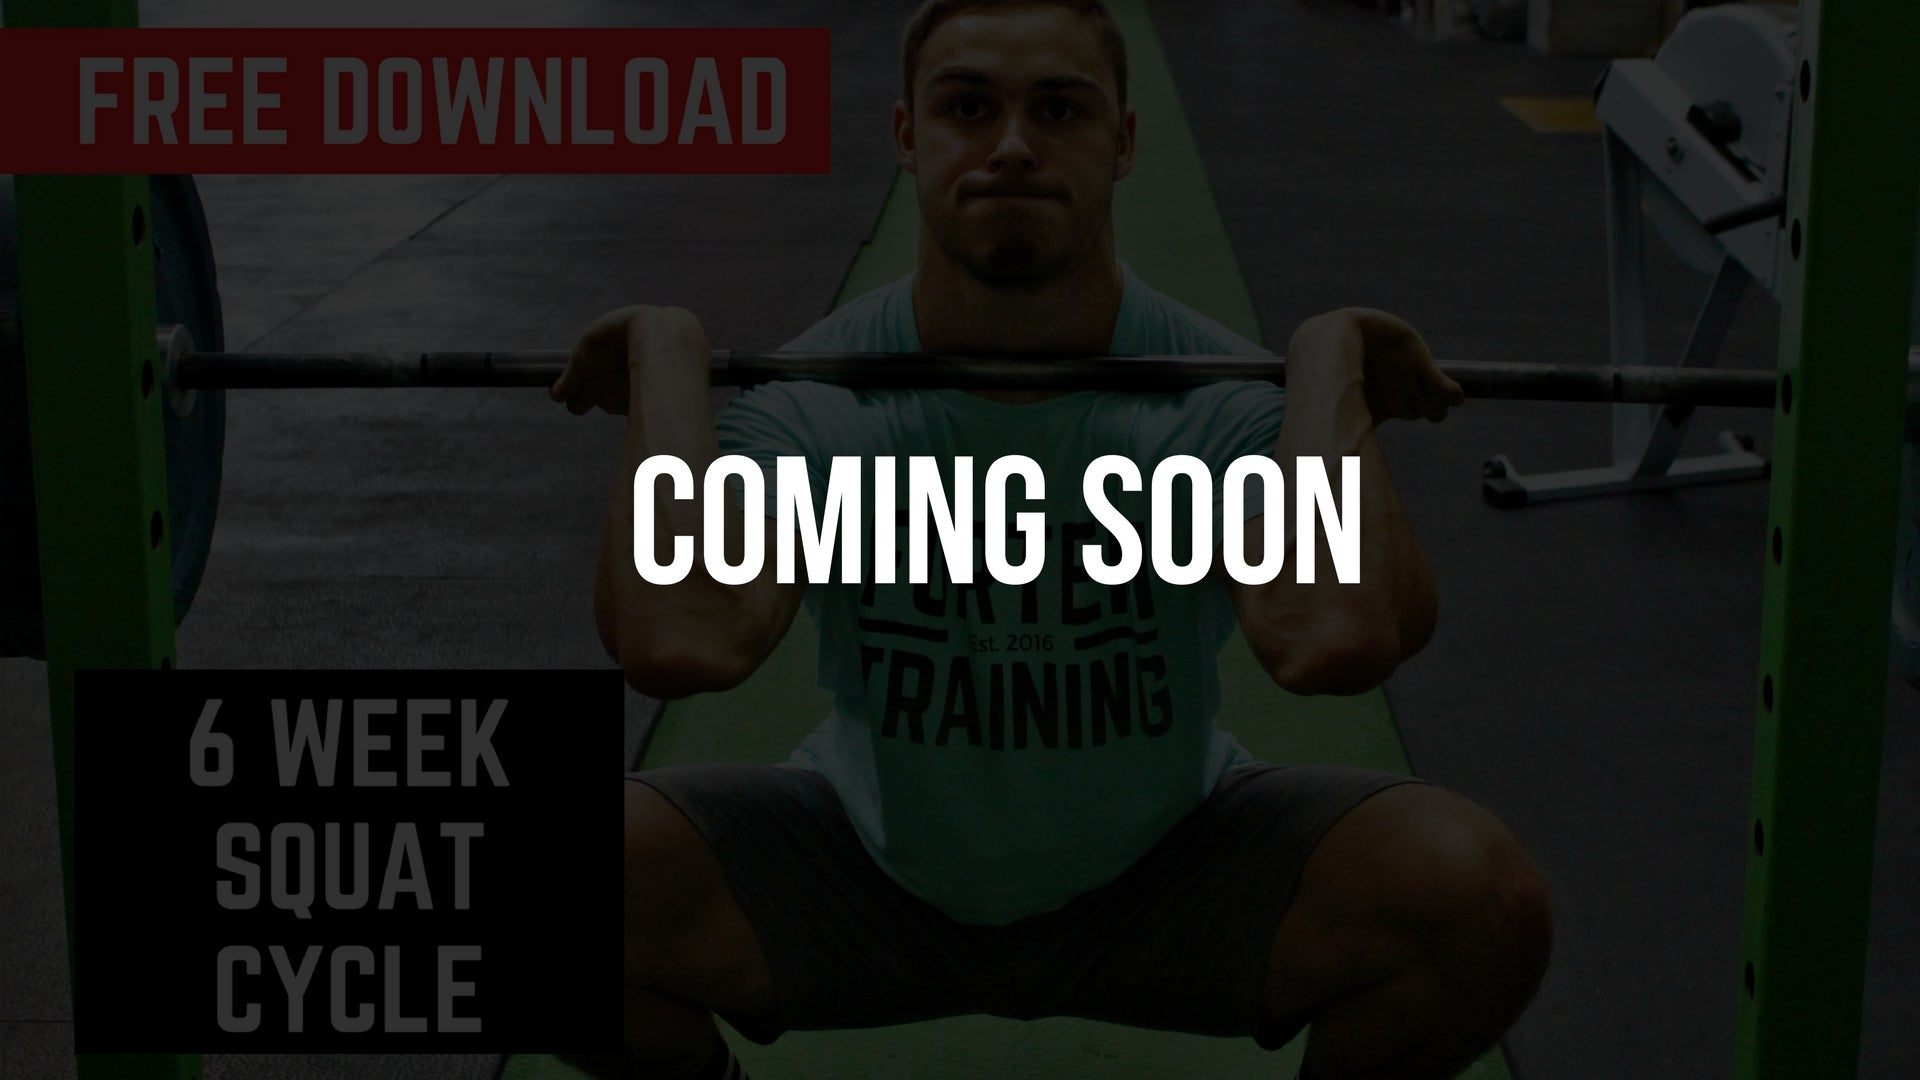 Fortem Training Free 6 Week Squat Strength Cycle